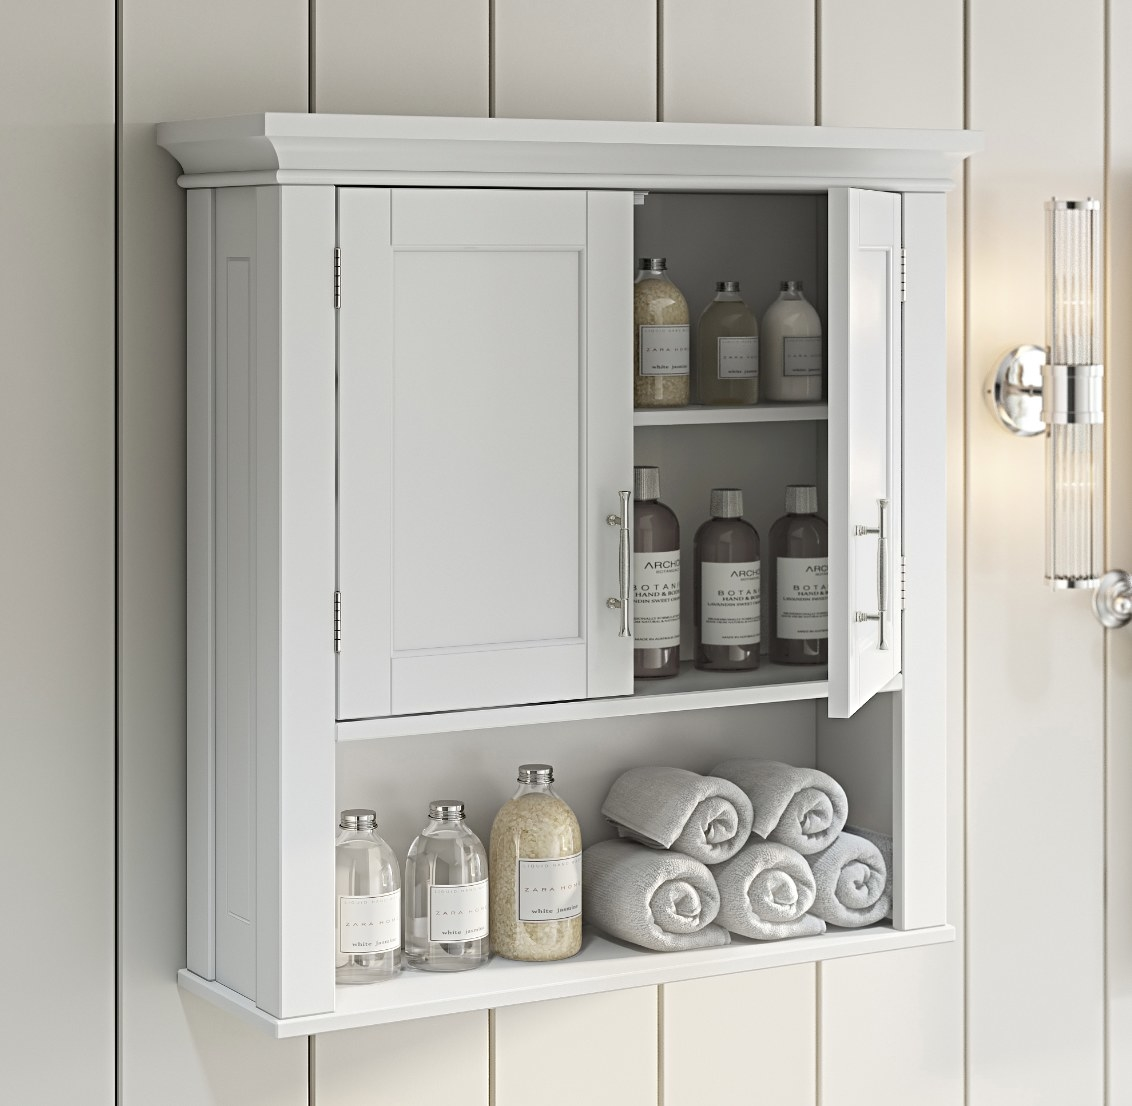 The bathroom storage wall cabinet in white